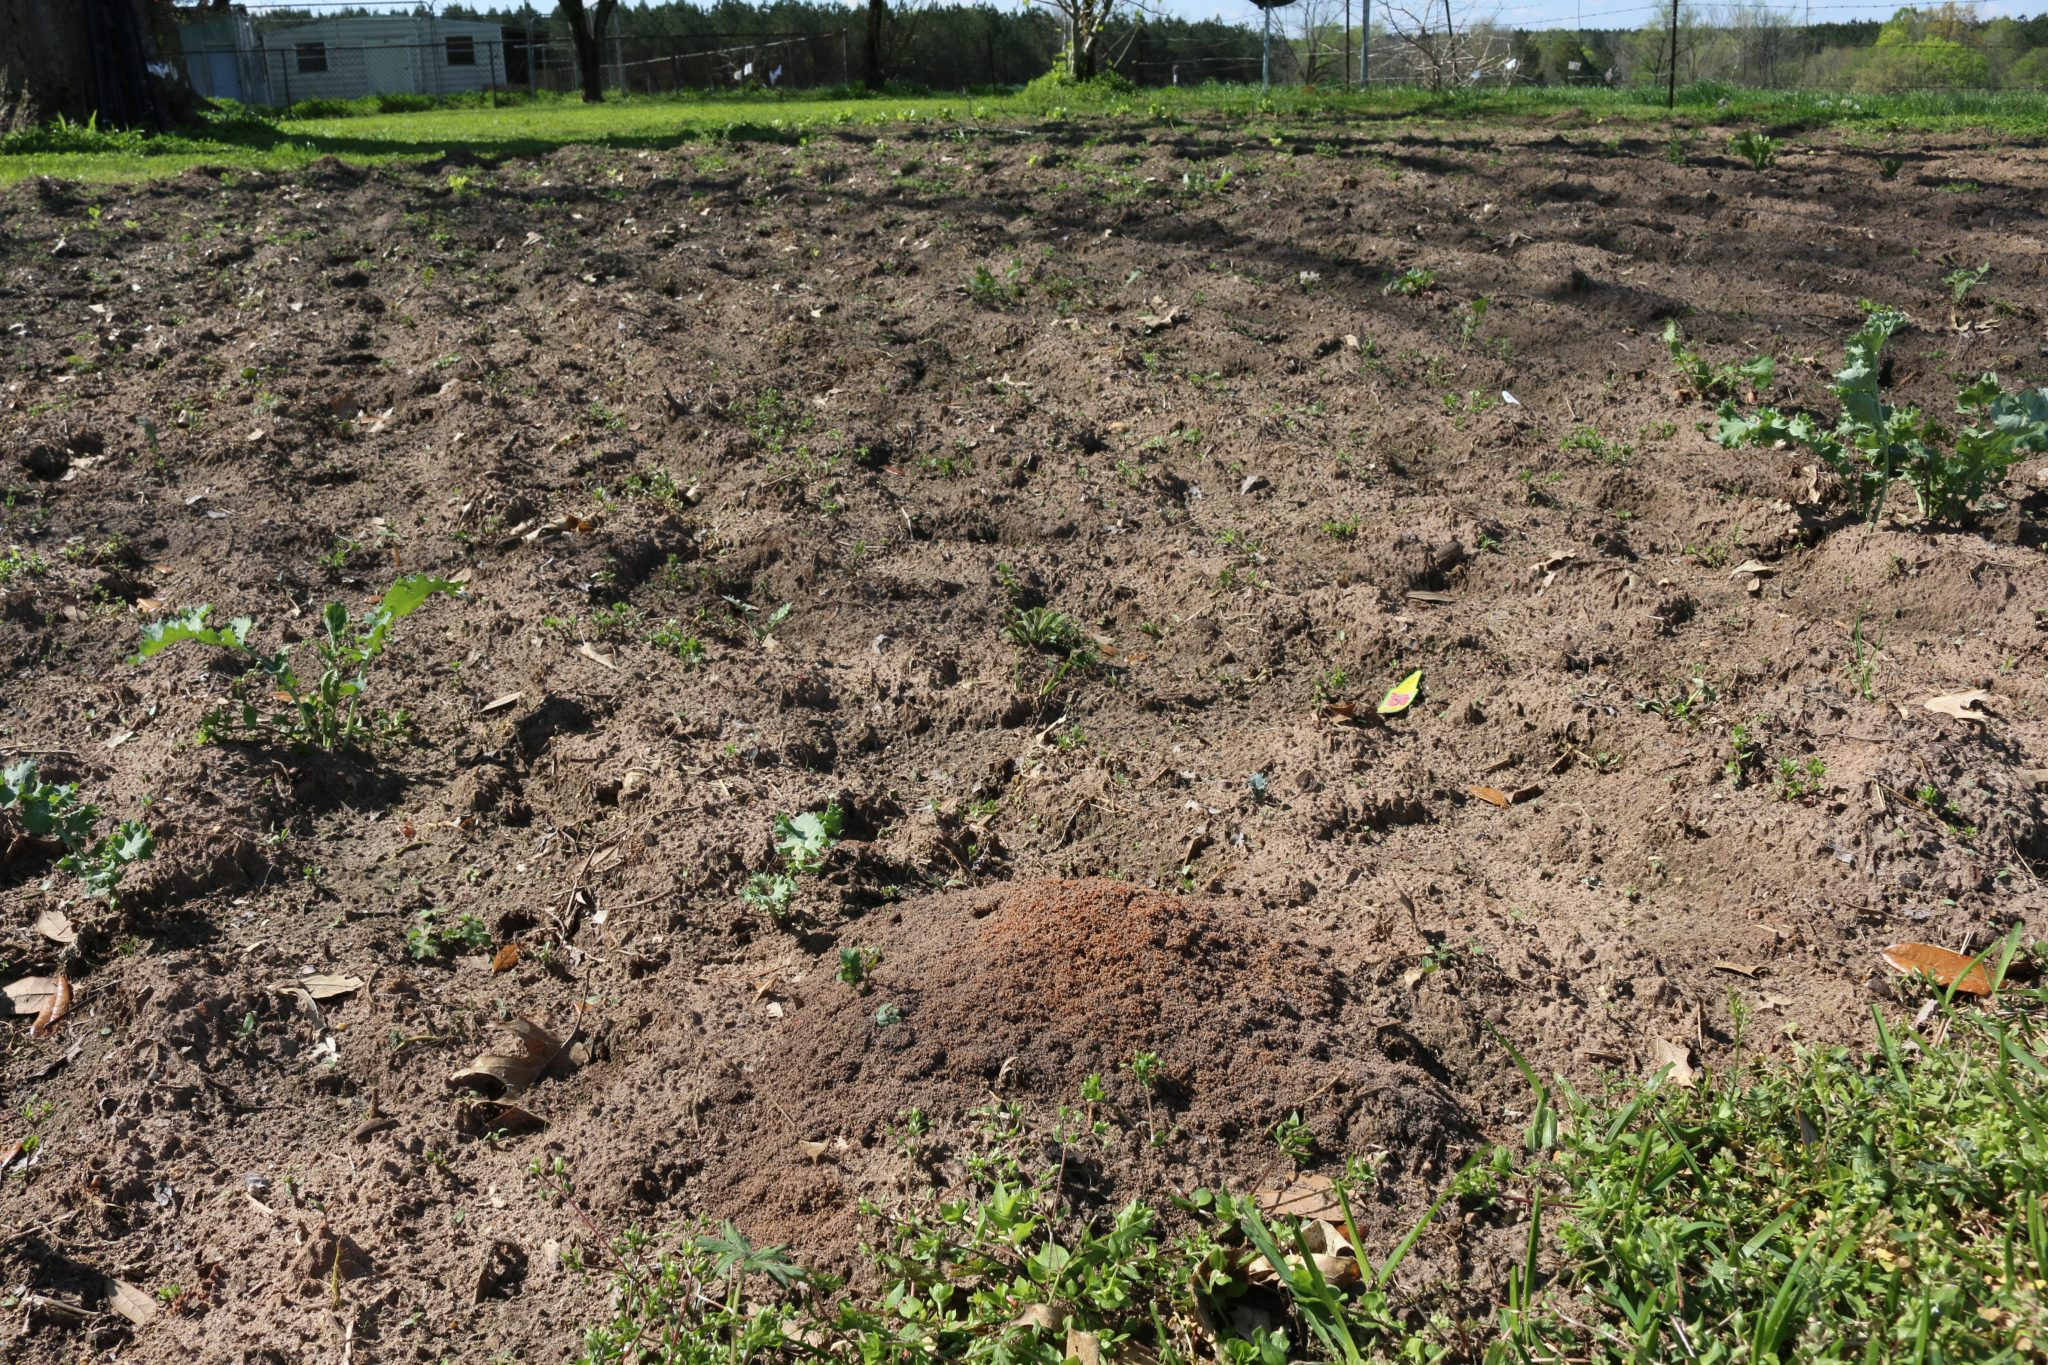 Controlling Fire Ants in Vegetable Gardens - Alabama